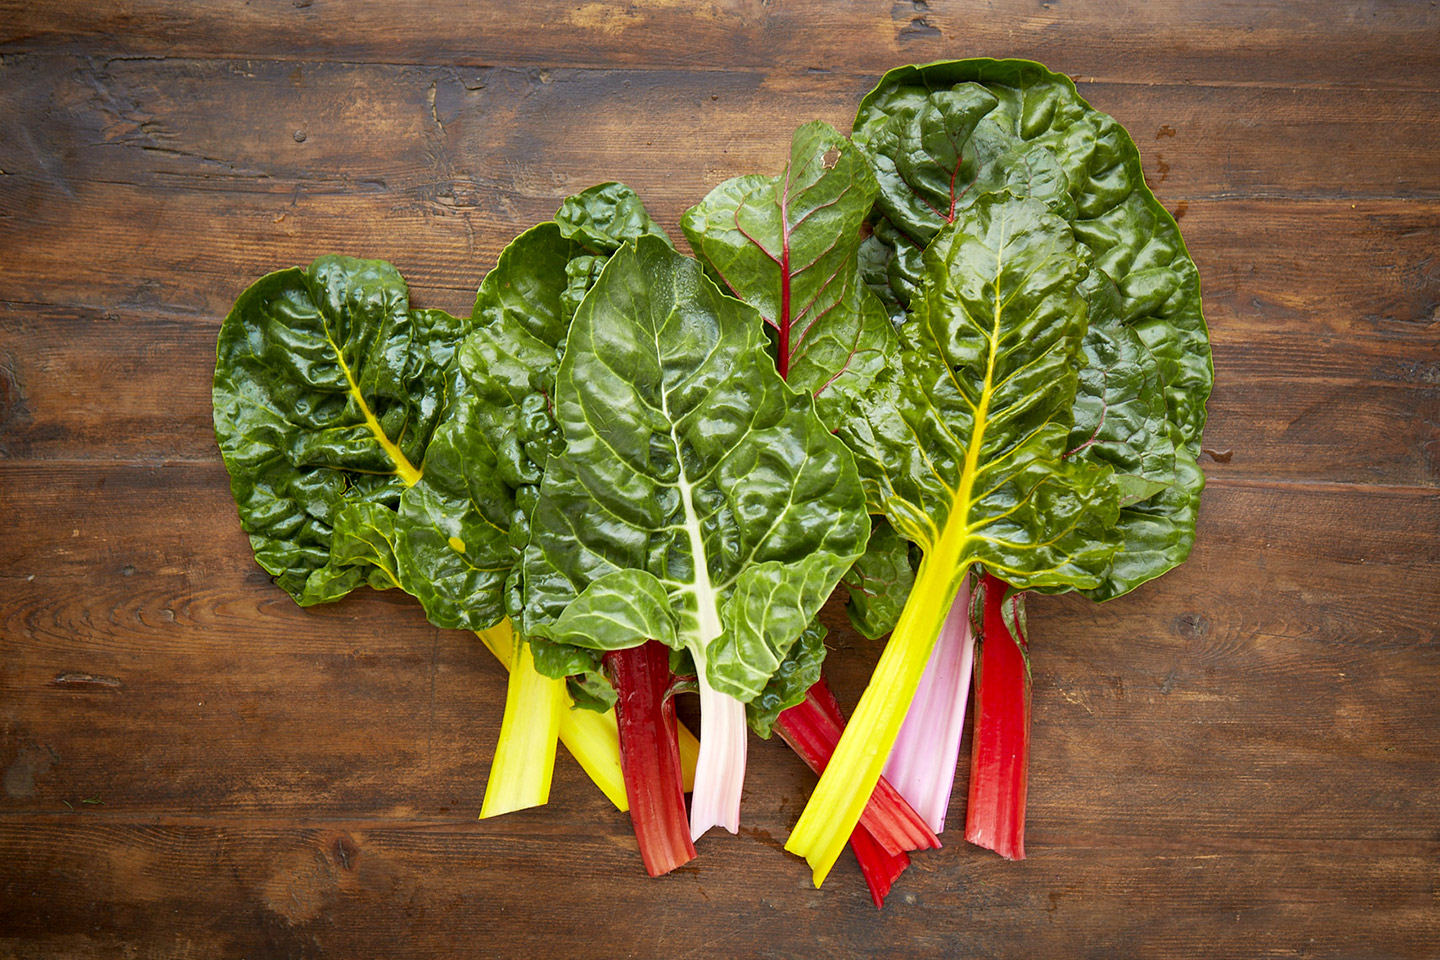 AlanCampbellPhotography,  fresh ingredients  from the garden Rainbow-Chard